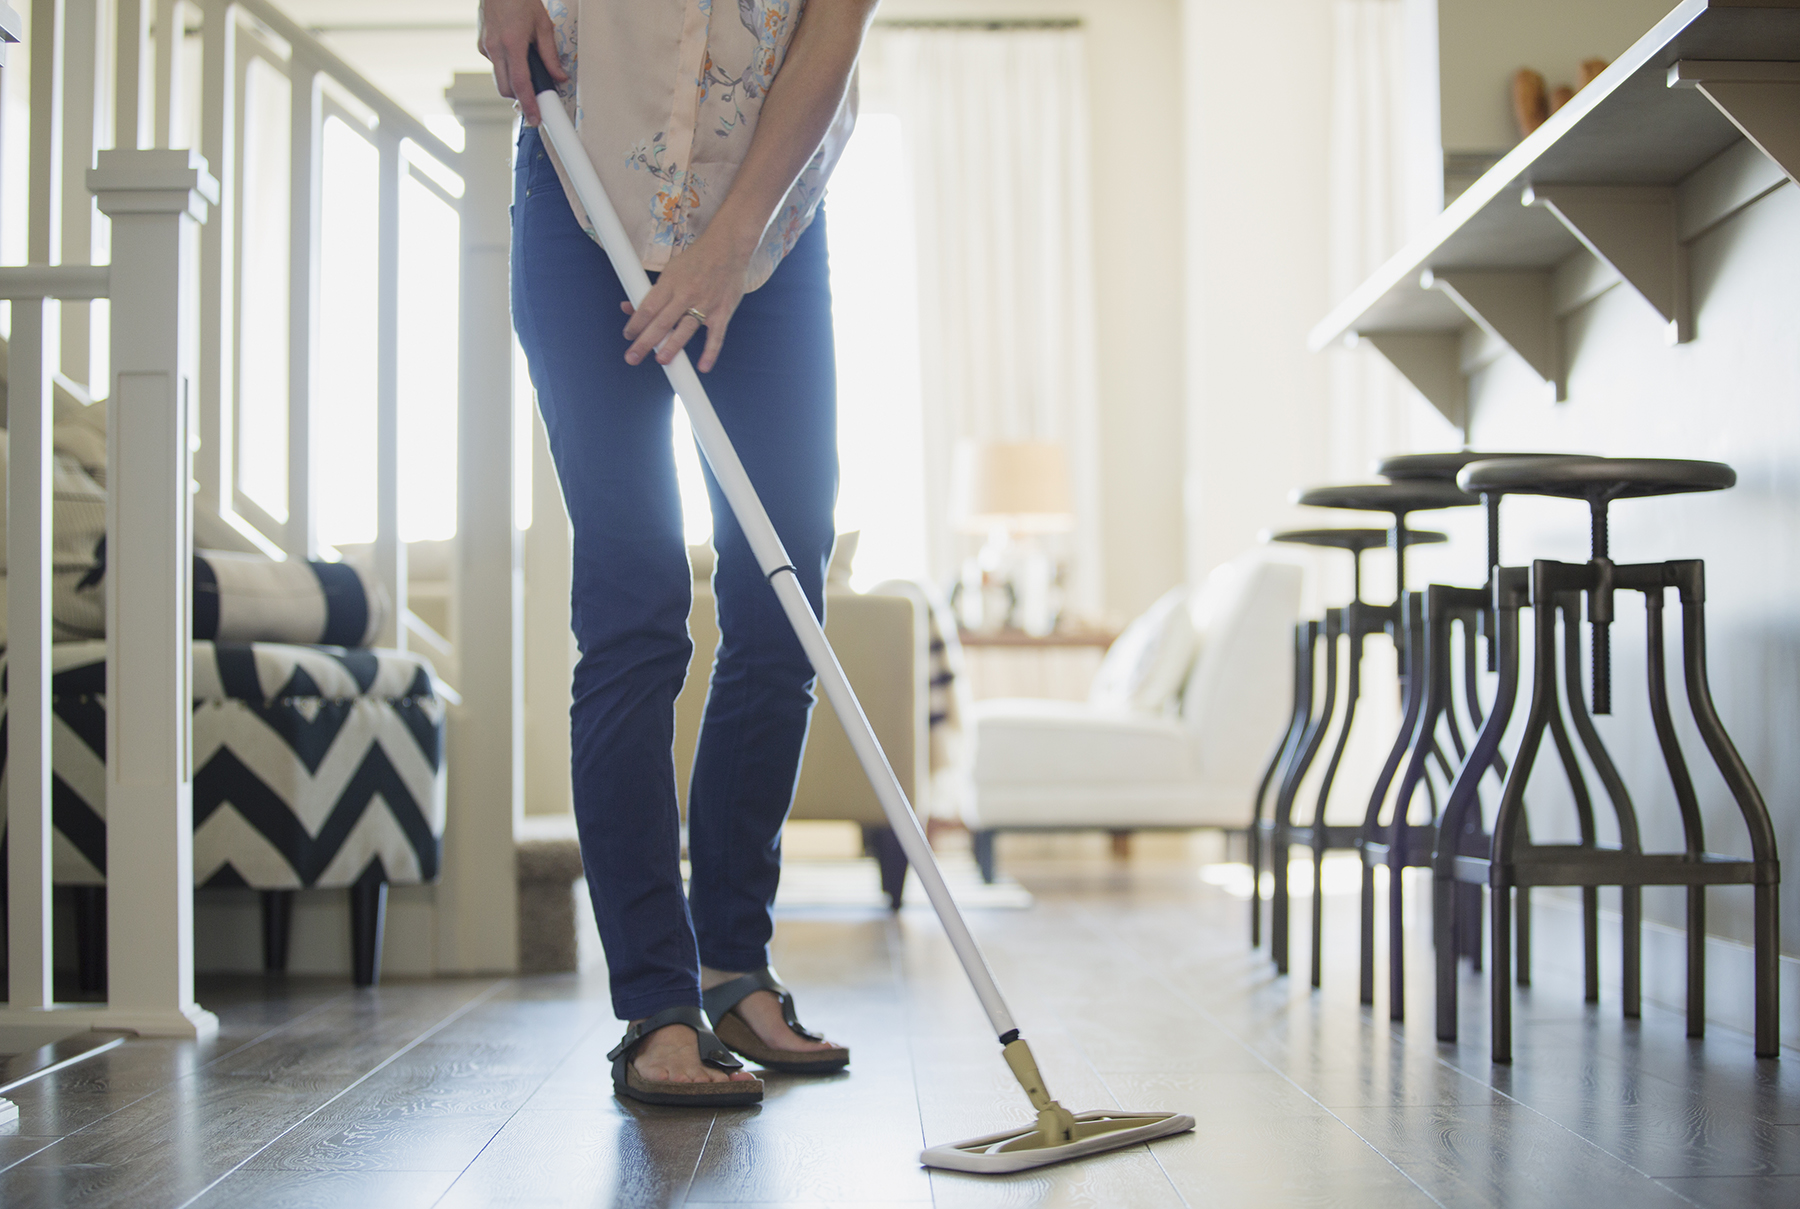 5 Ways to Make Your Guests Think Your Home Is Clean